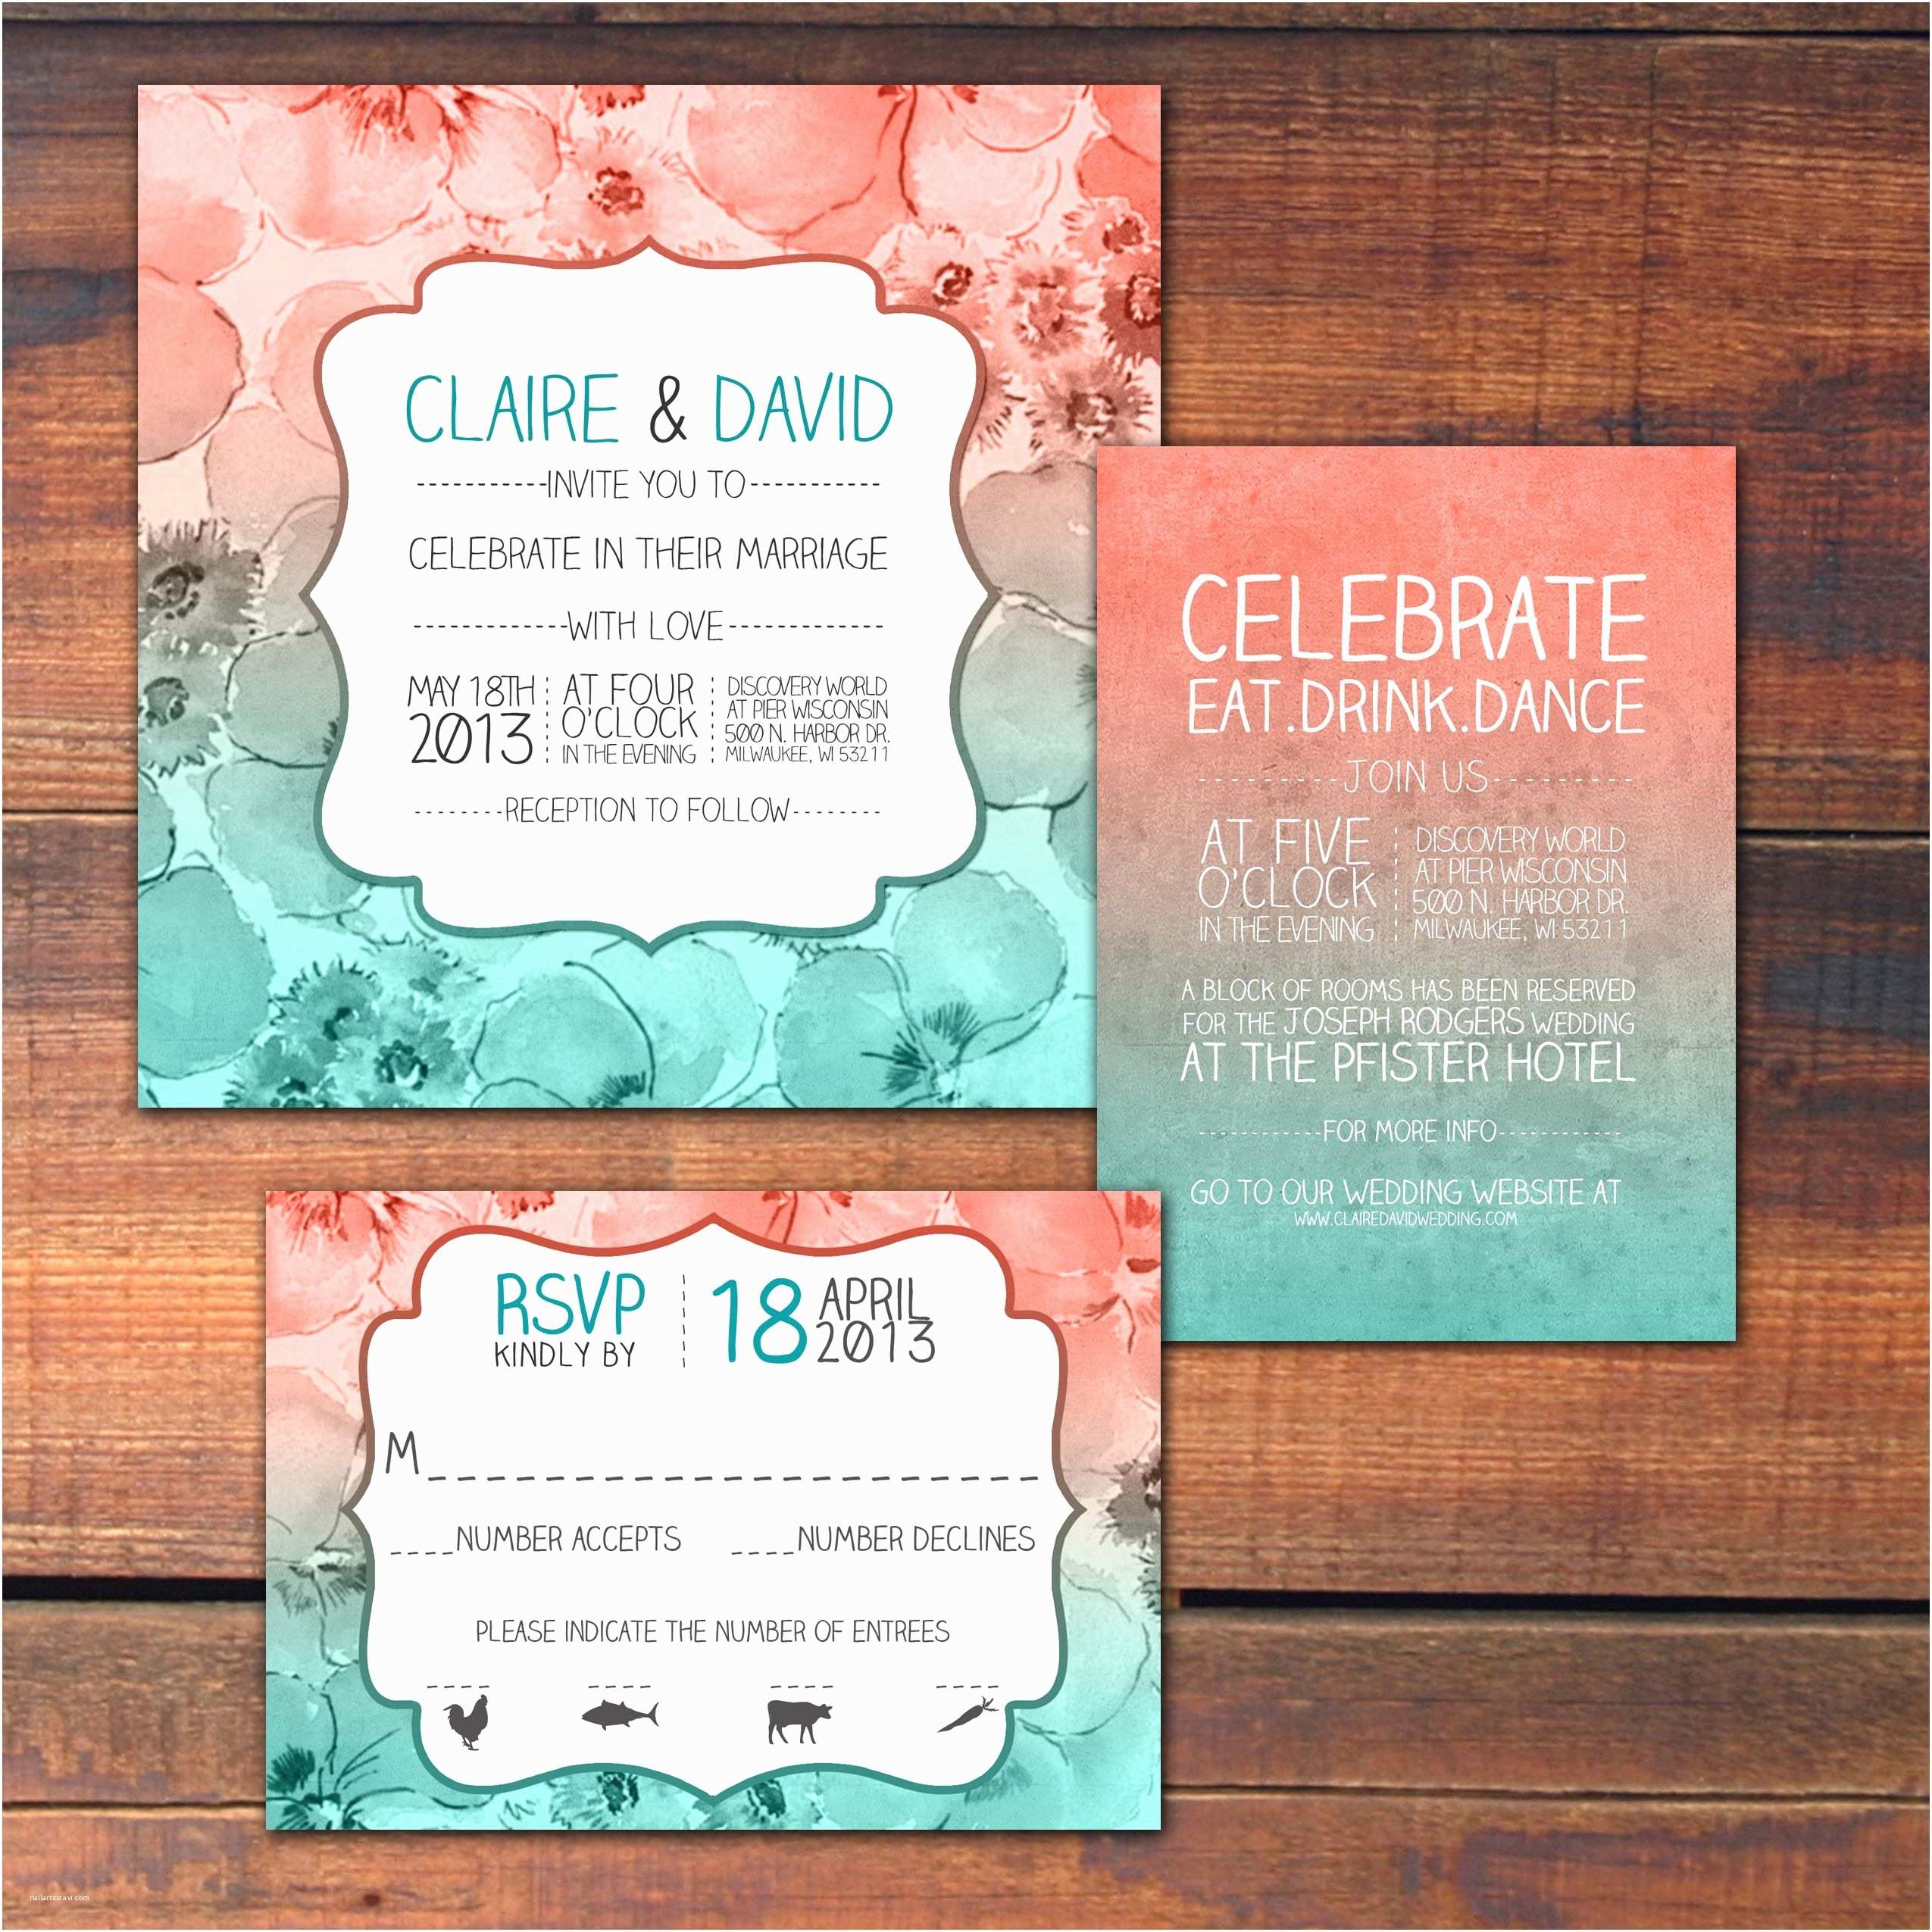 Teal Wedding Invitations Coral and Teal Inspired Wedding Invitations by Dco